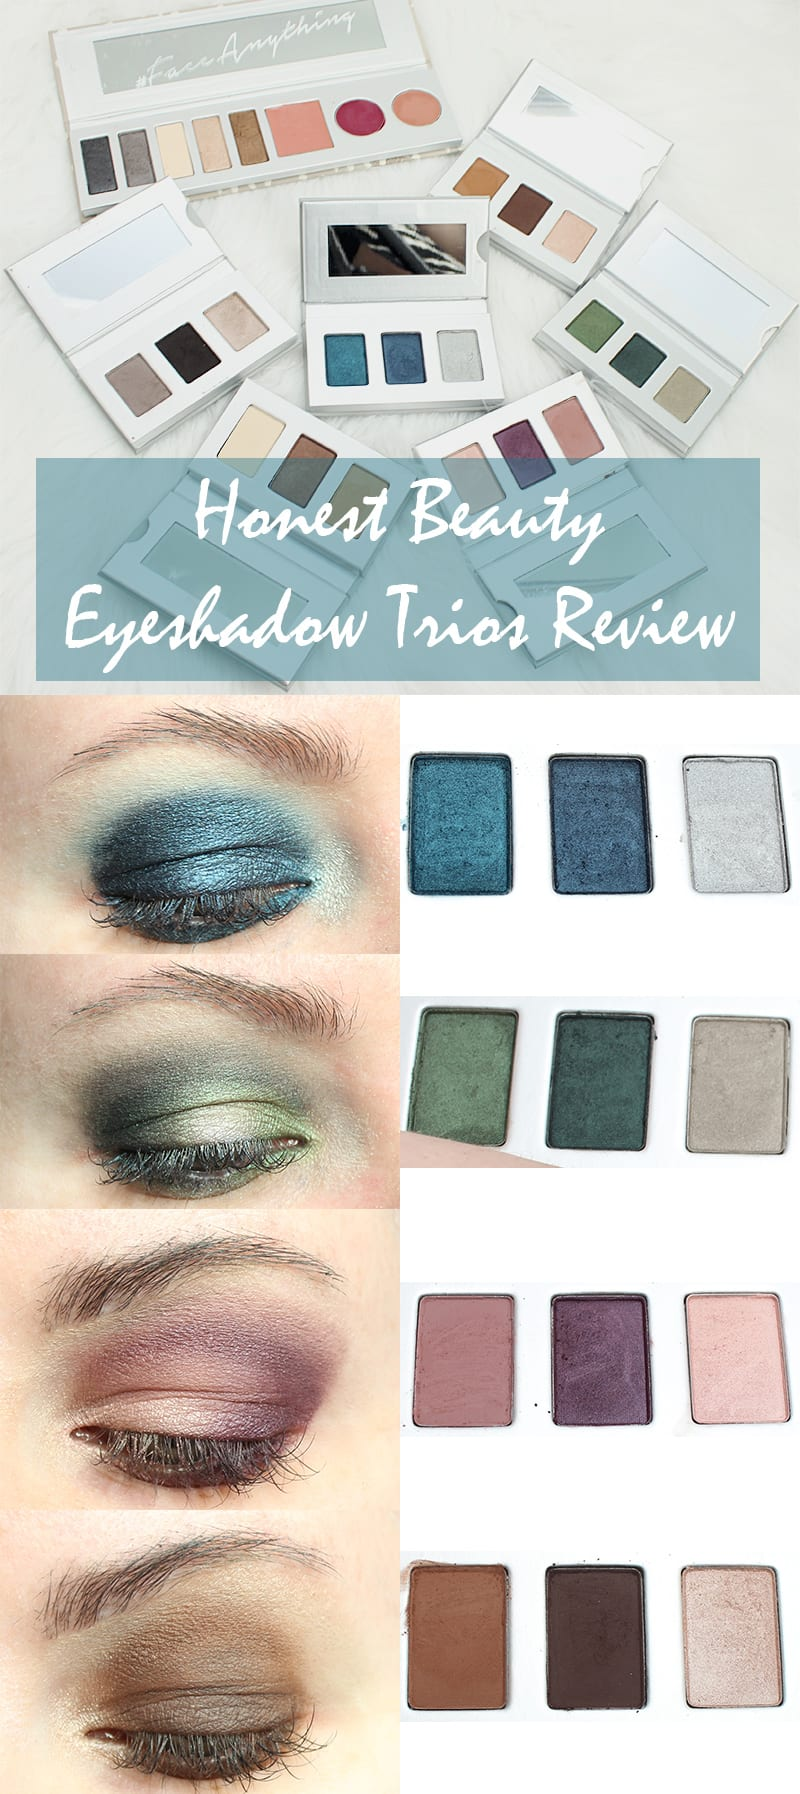 Honest Beauty Eyeshadow Trios Review Comparison Swatches Looks